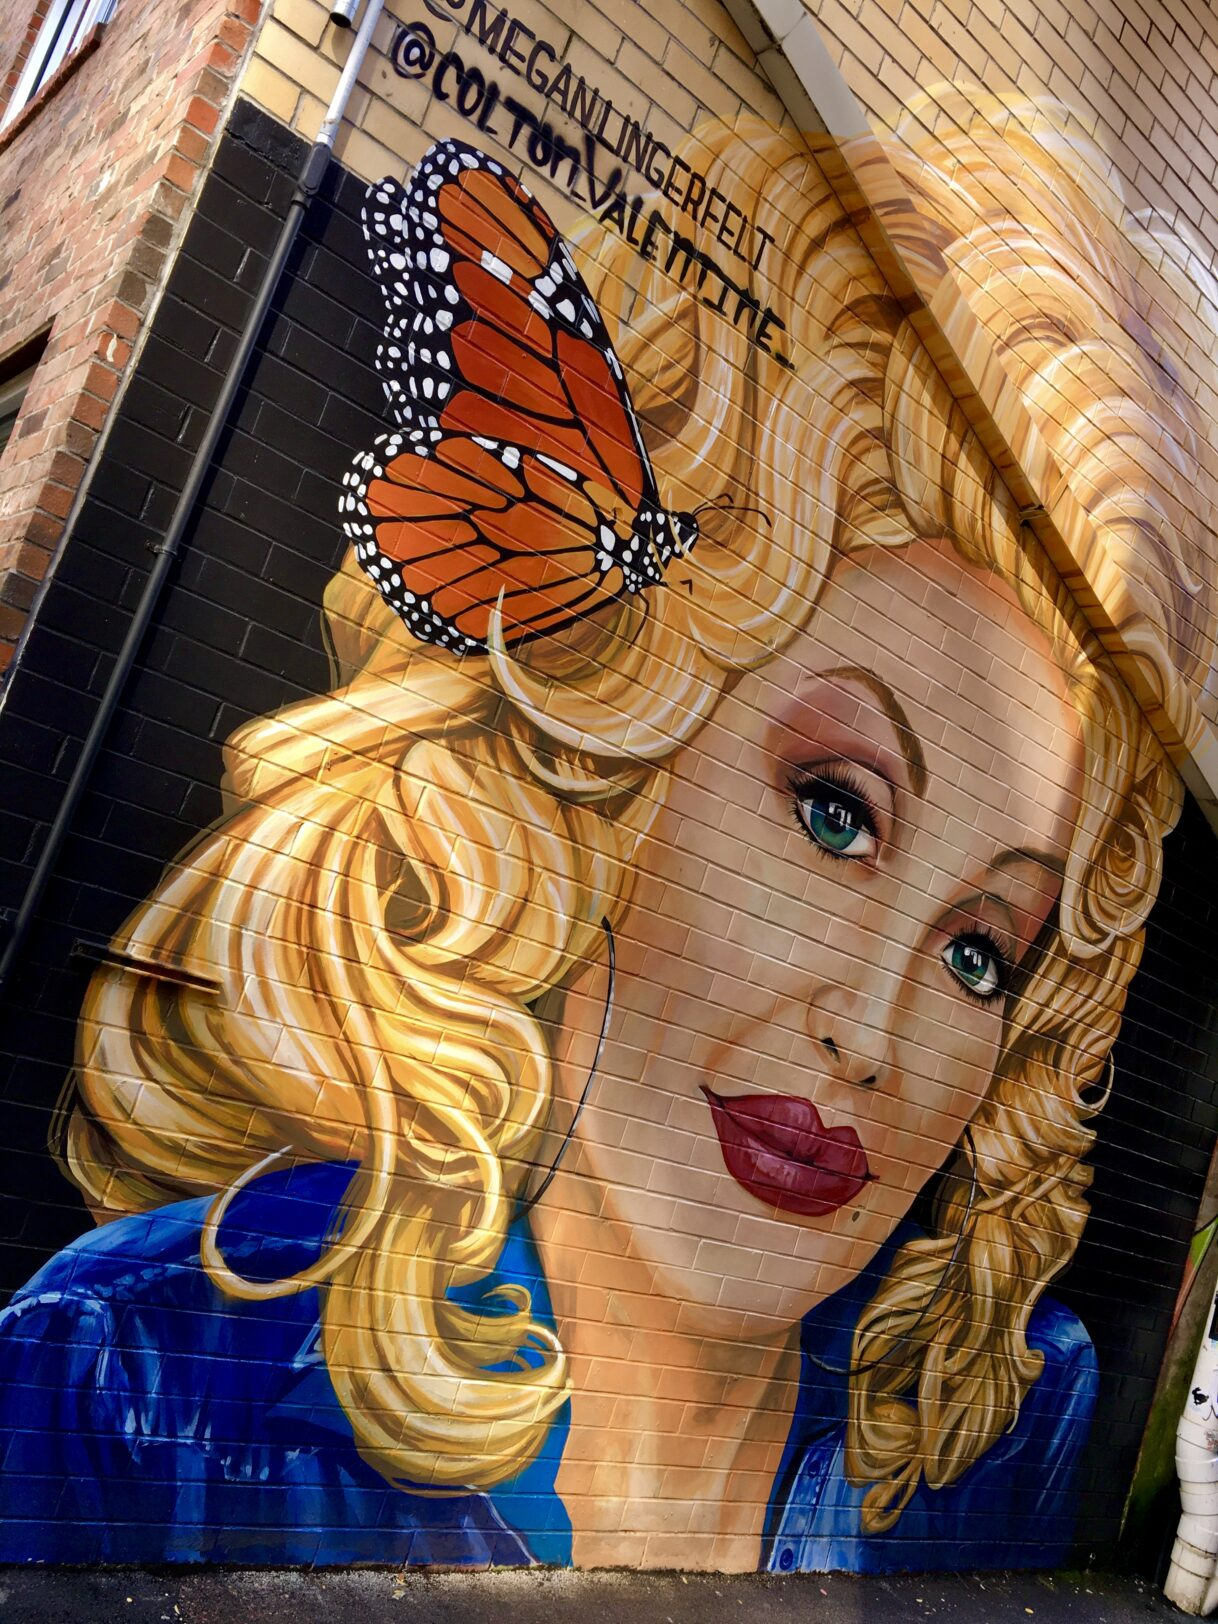 The Queen of East Tennessee: Dolly Parton Mural in Strong Alley by Colton Valentine and Megan Lingerfelt – Knoxville, Tennessee – 10/29/2020